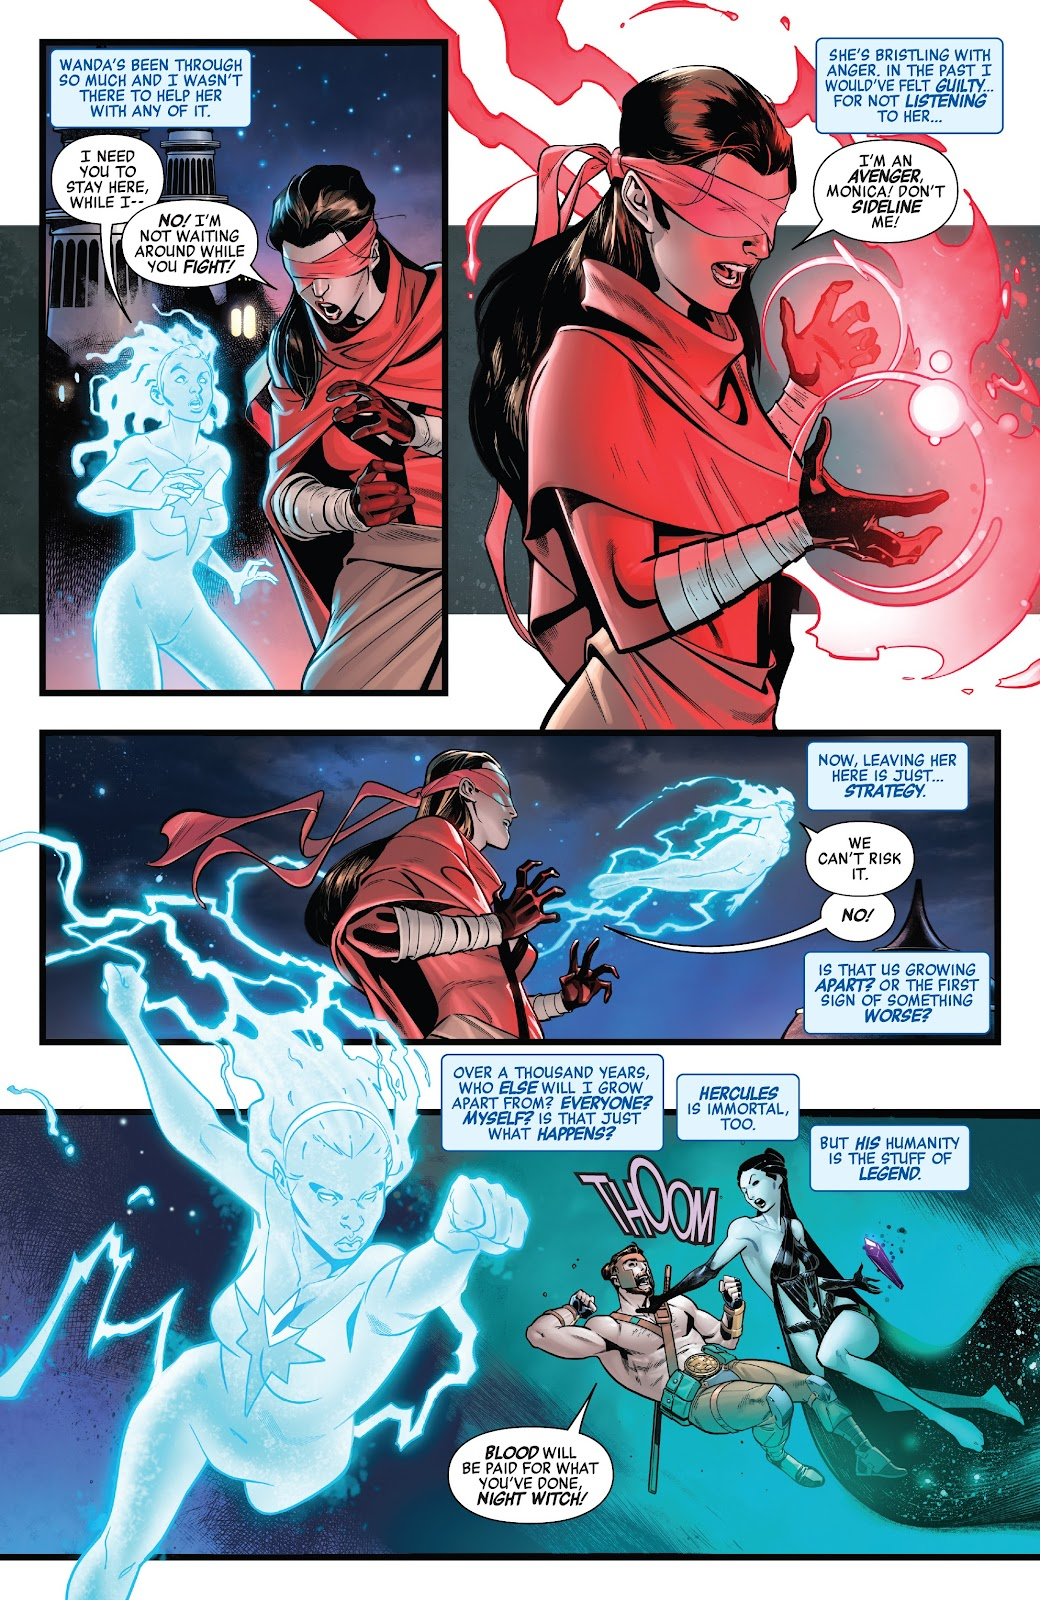 Read online Avengers No Road Home comic -  Issue #7 - 11